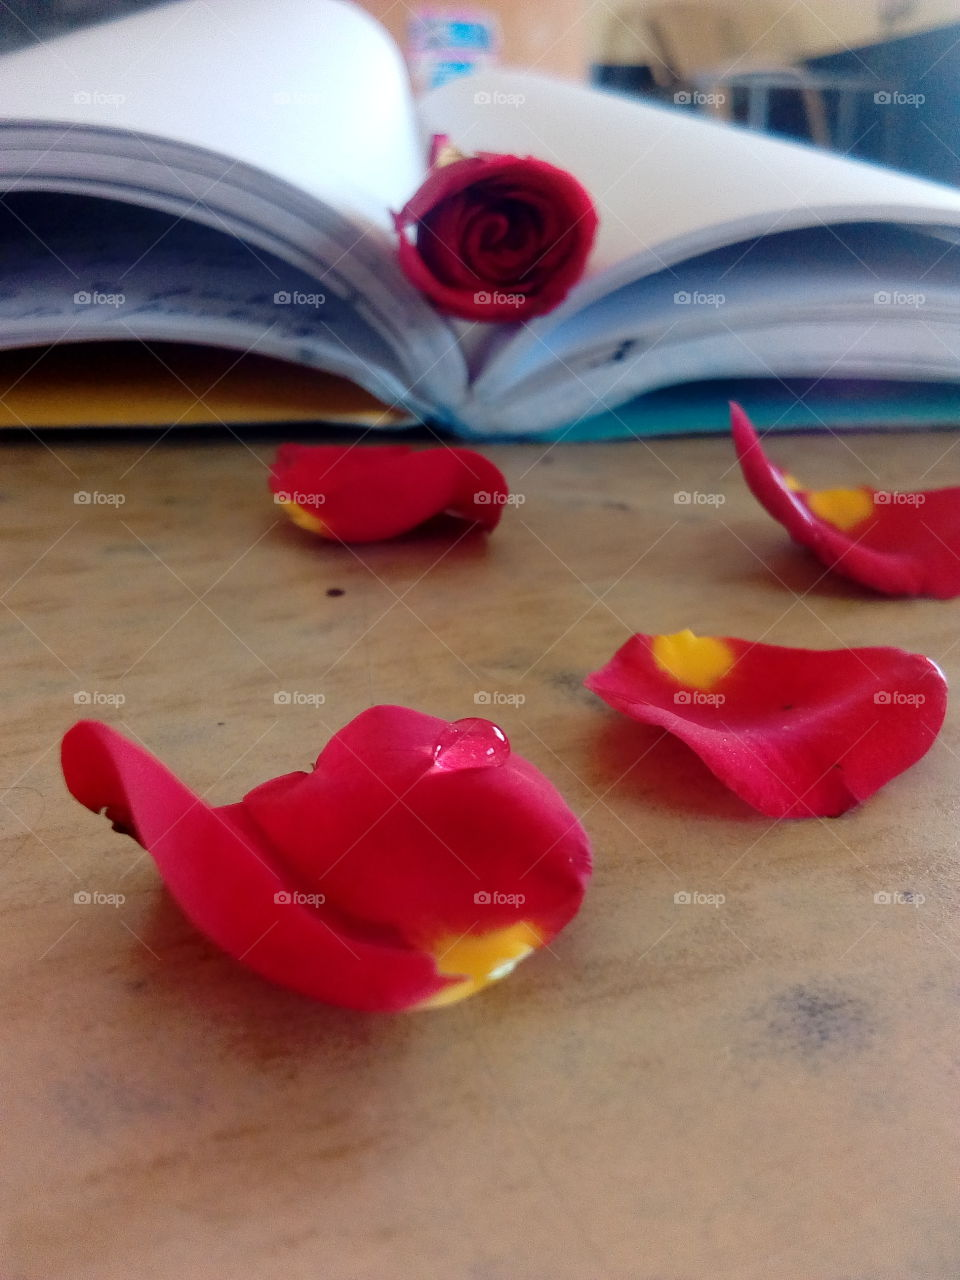 Rose between book pages